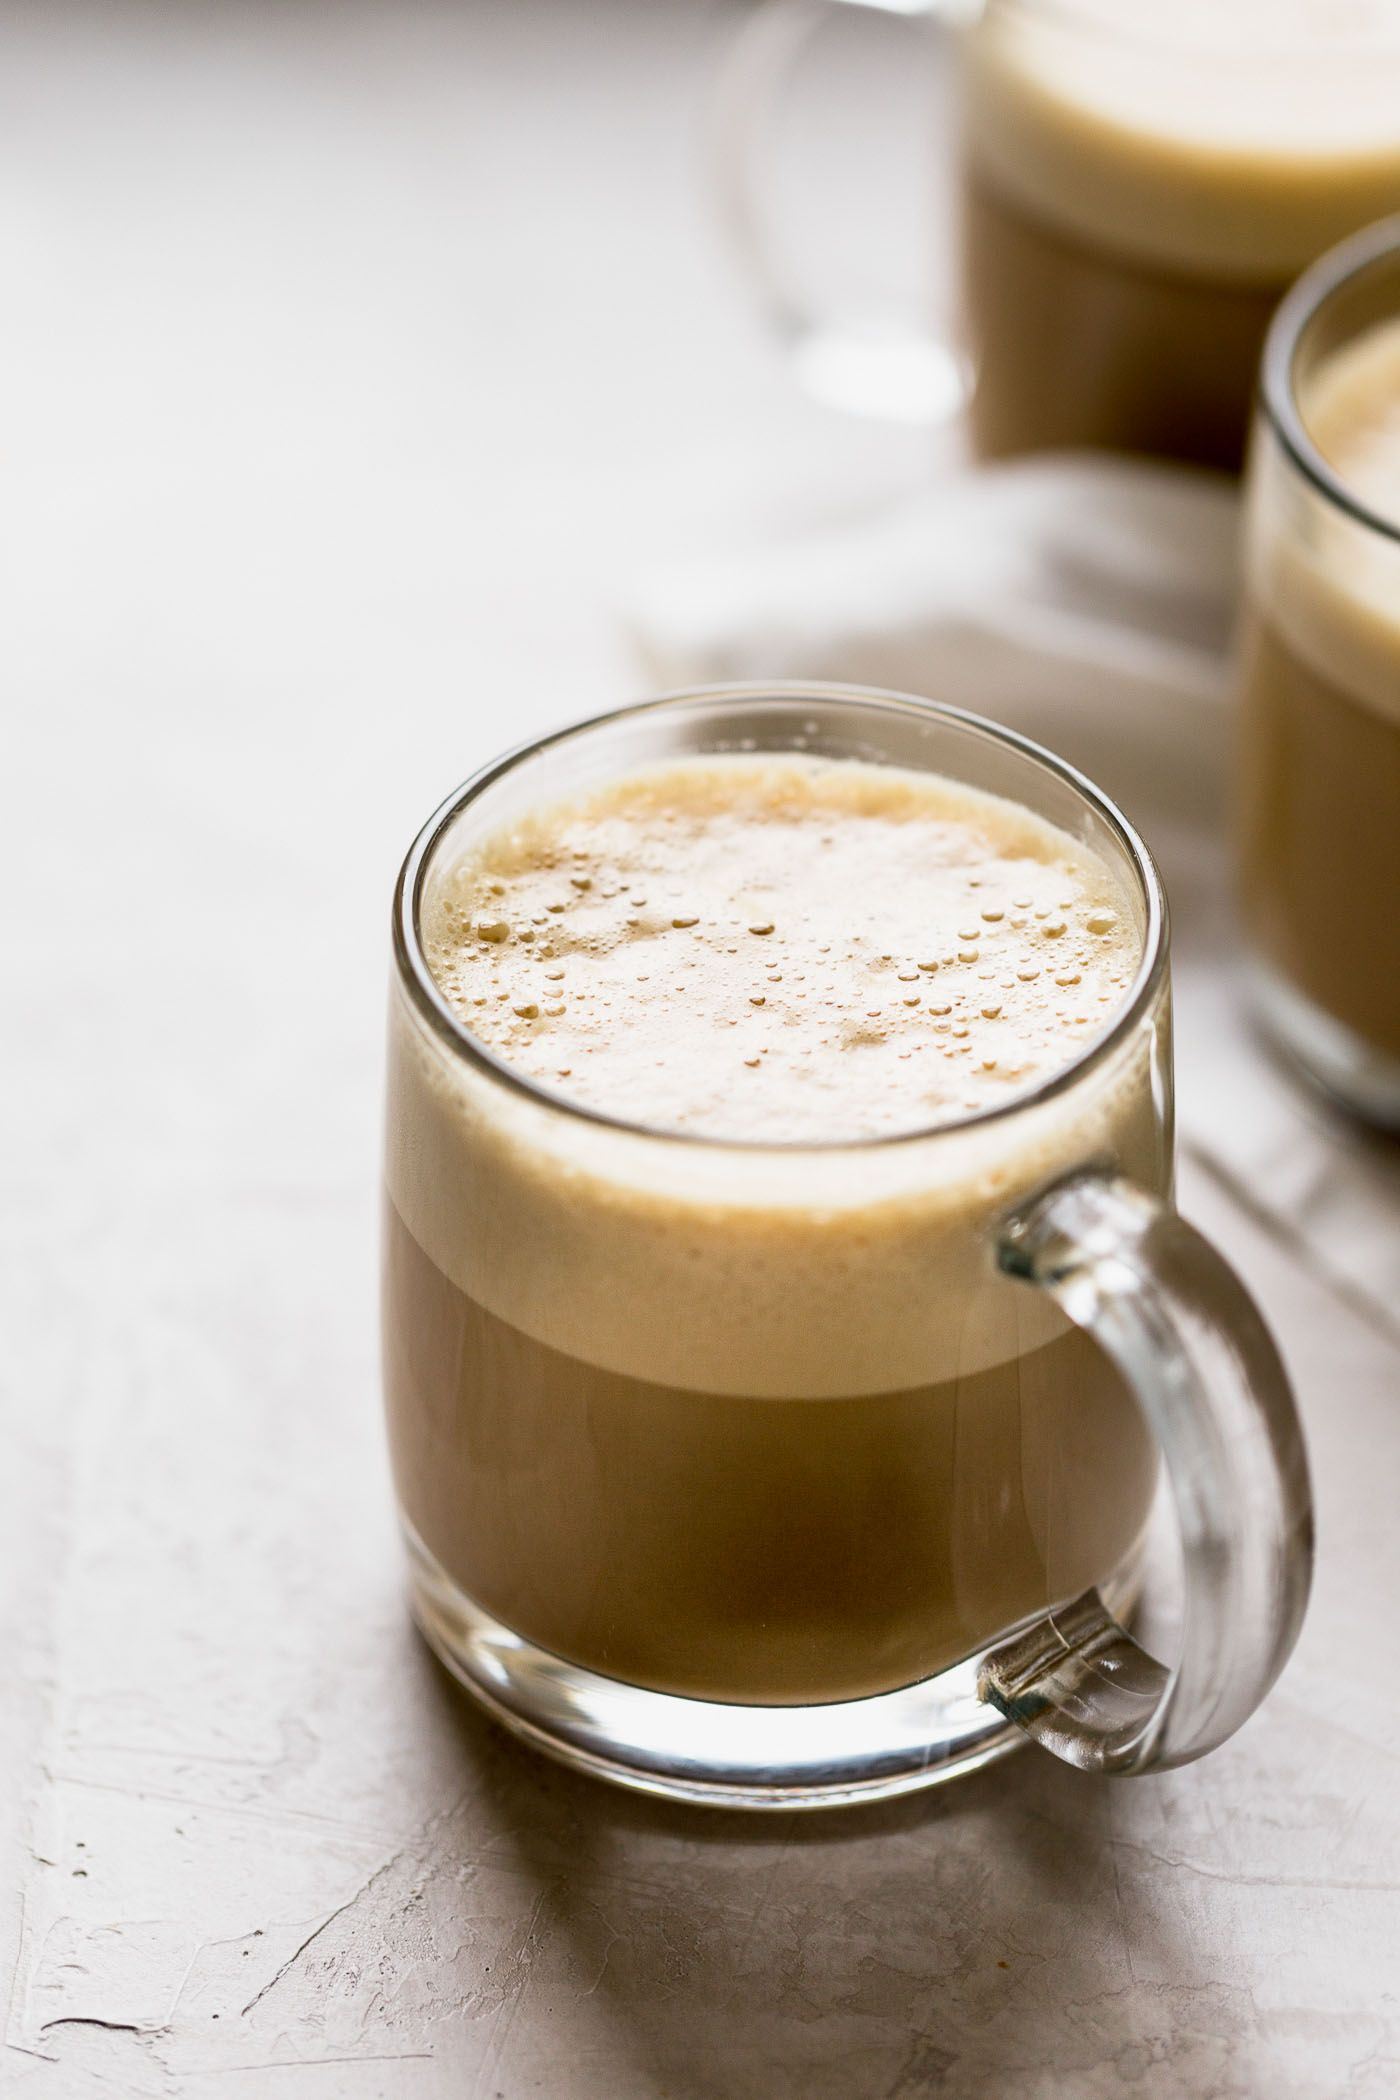 A Bulletproof Coffee Protein Latte Recipe For A Dreamy Creamy Healthy Latte That Is Be Bulletproof Coffee Bulletproof Coffee Recipe Coconut Oil Coffee Recipe